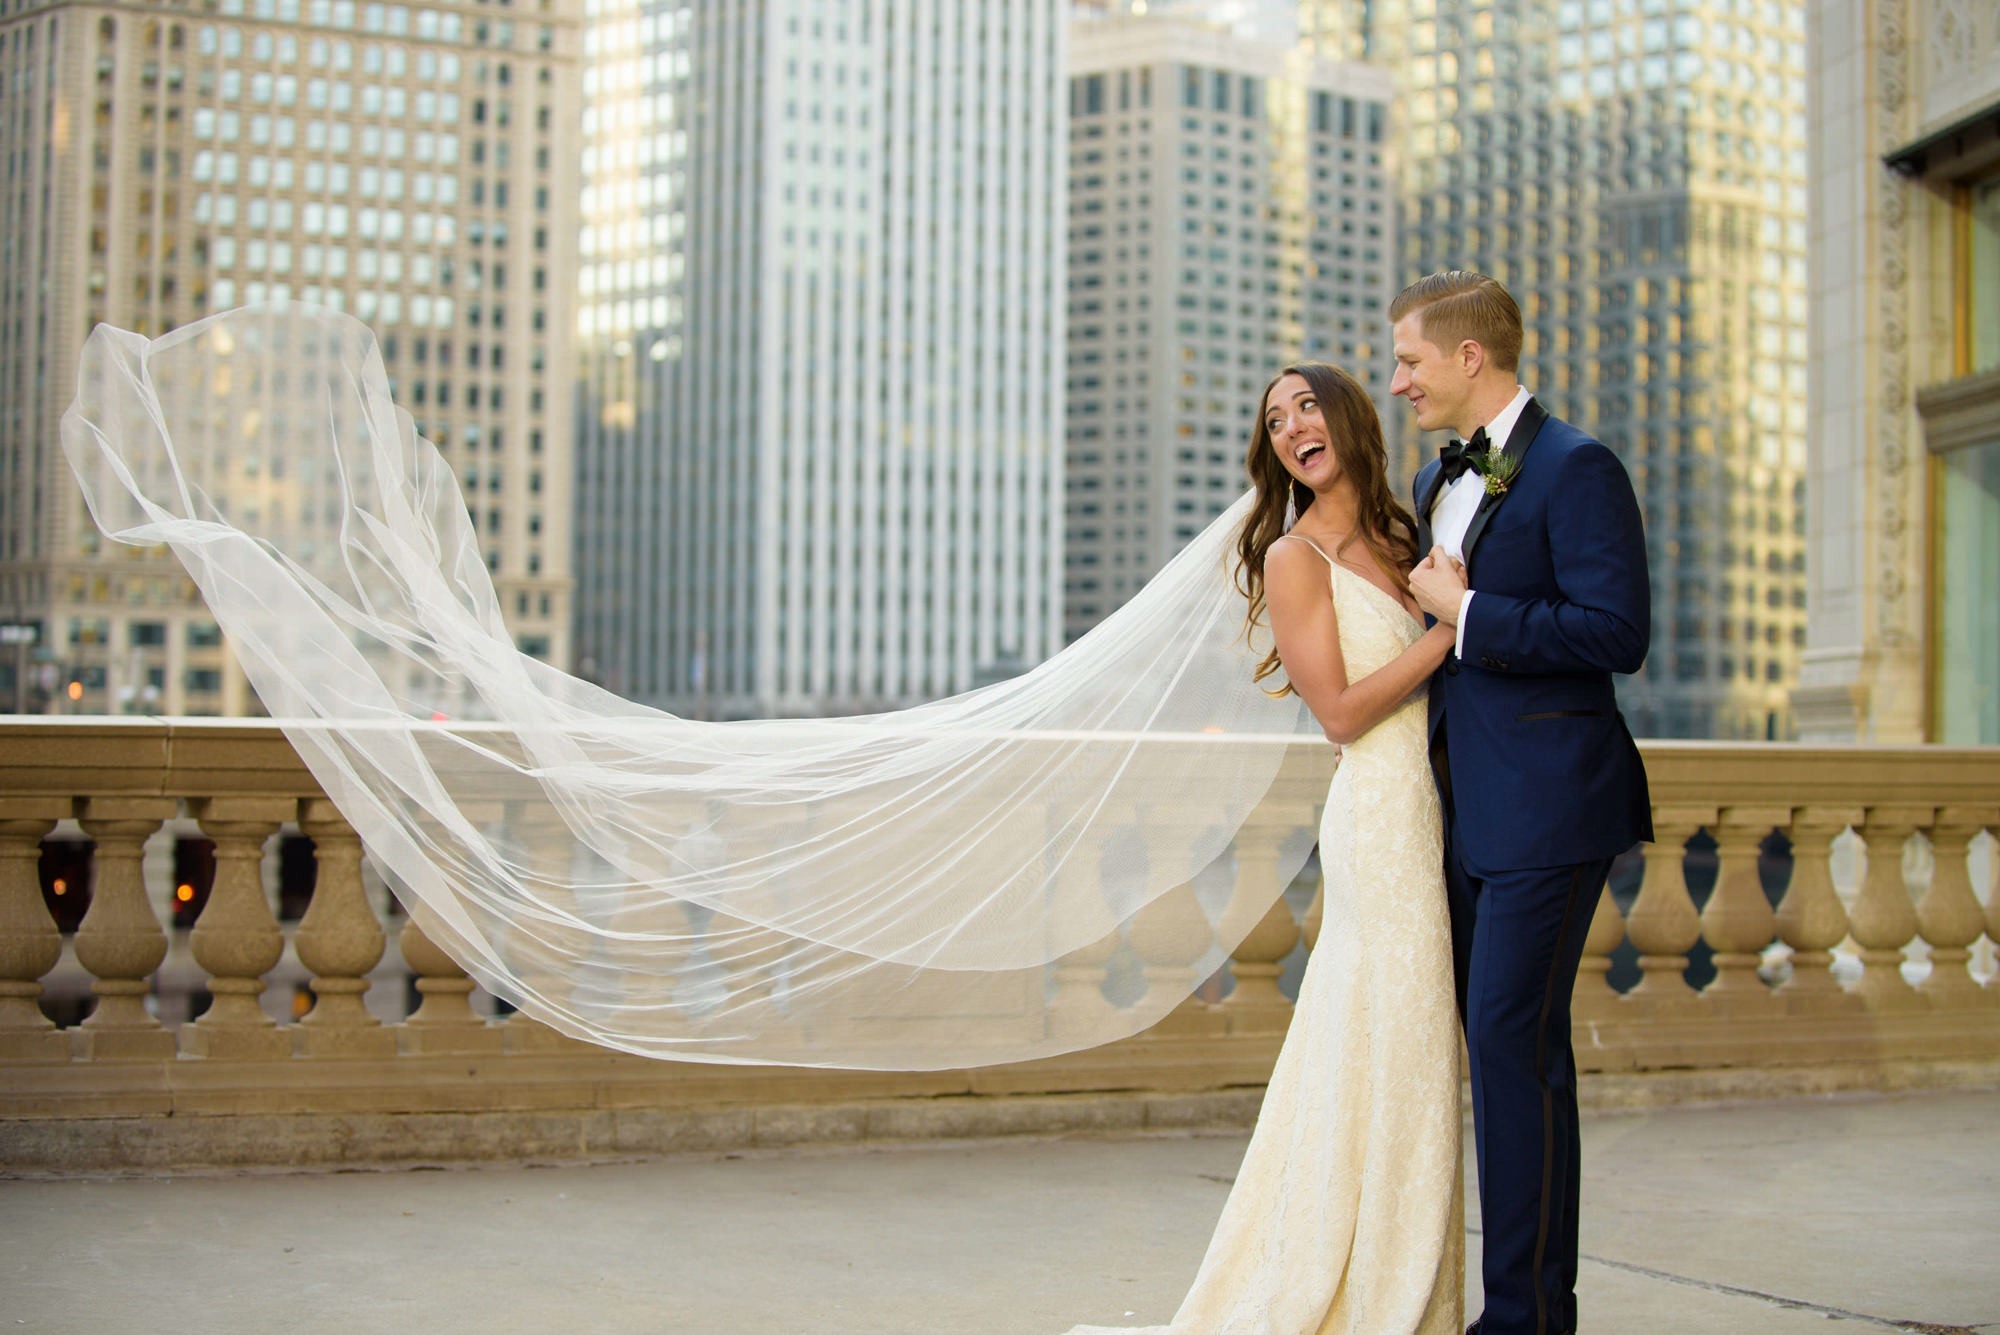 Bride Groom Flying Veil Chicago Wrigley Building